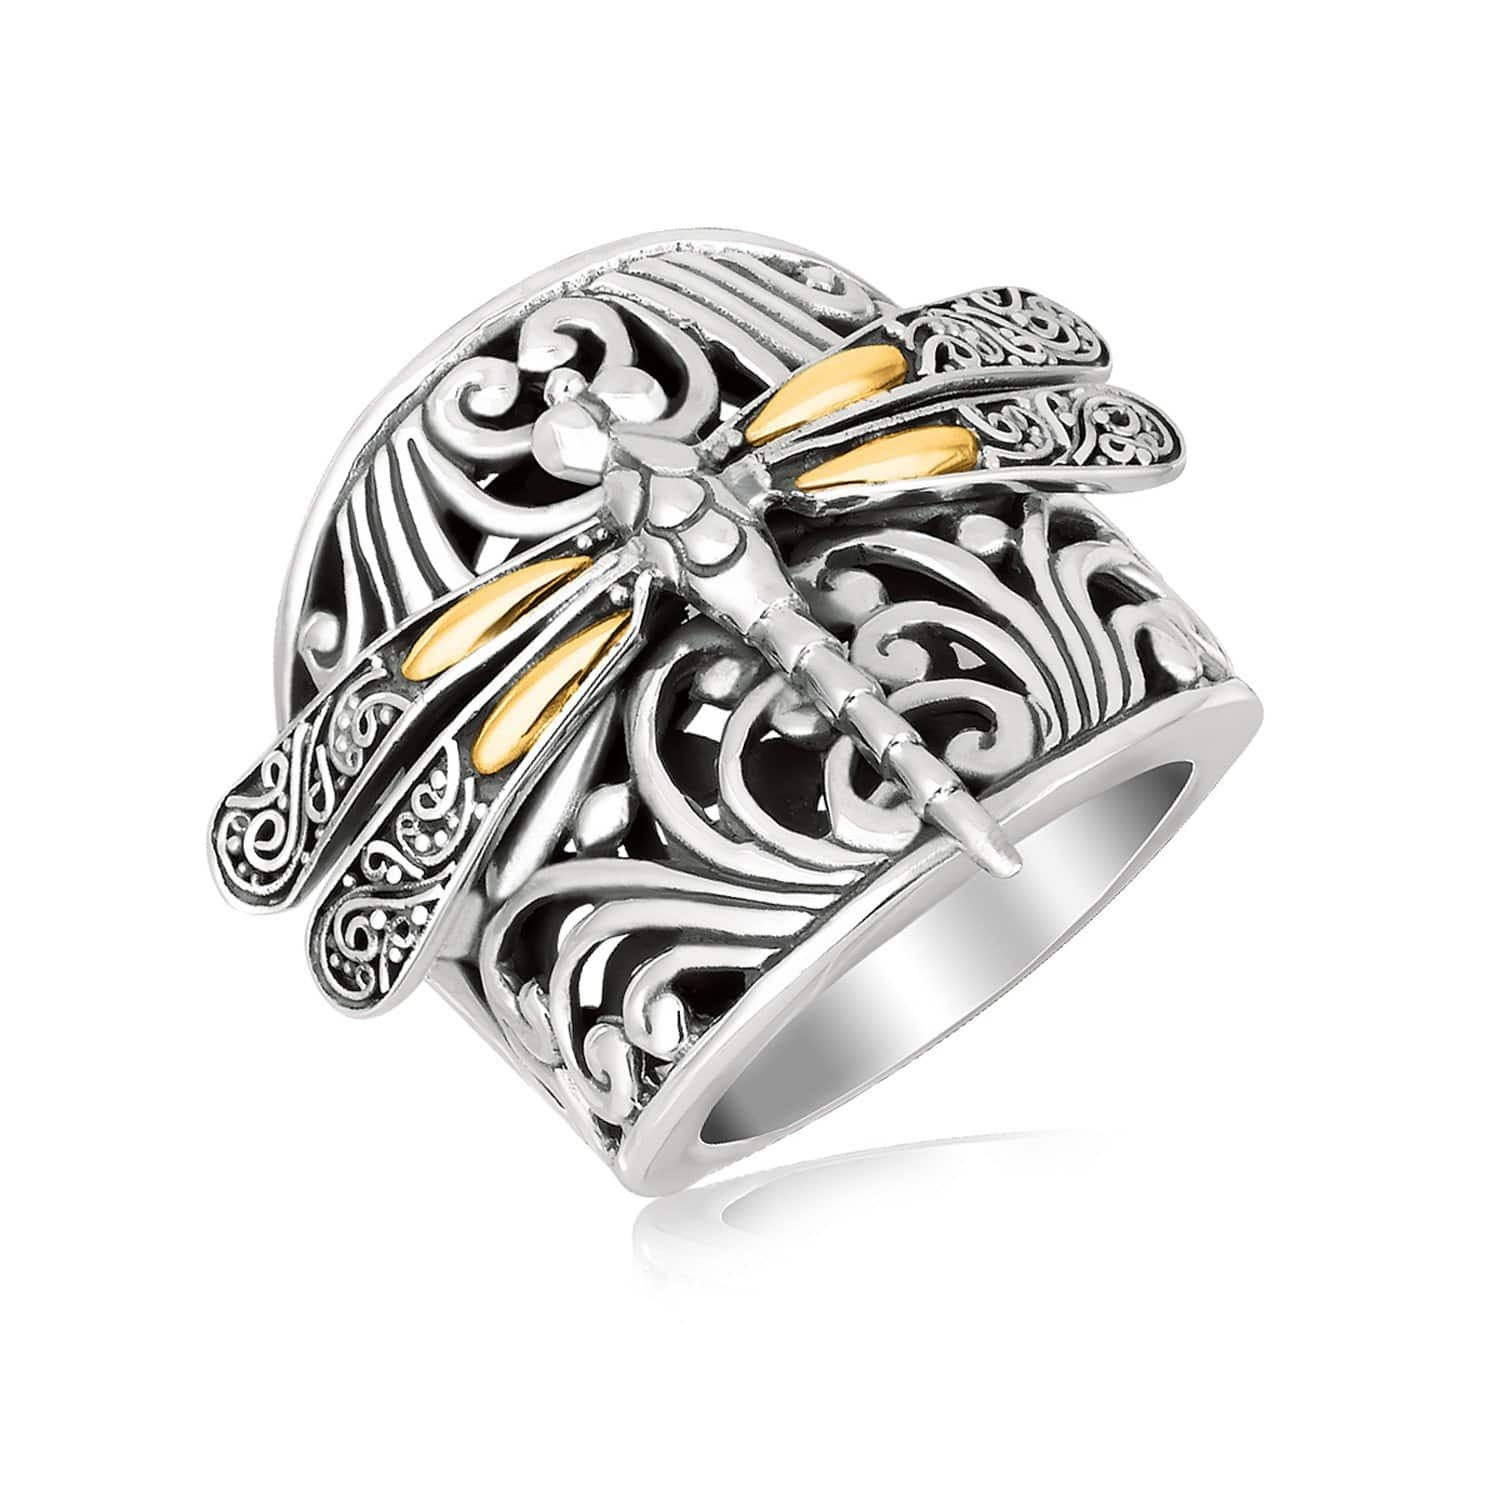 18K Yellow Gold and Sterling Silver Dragonfly and Flourishes Ring Size 9